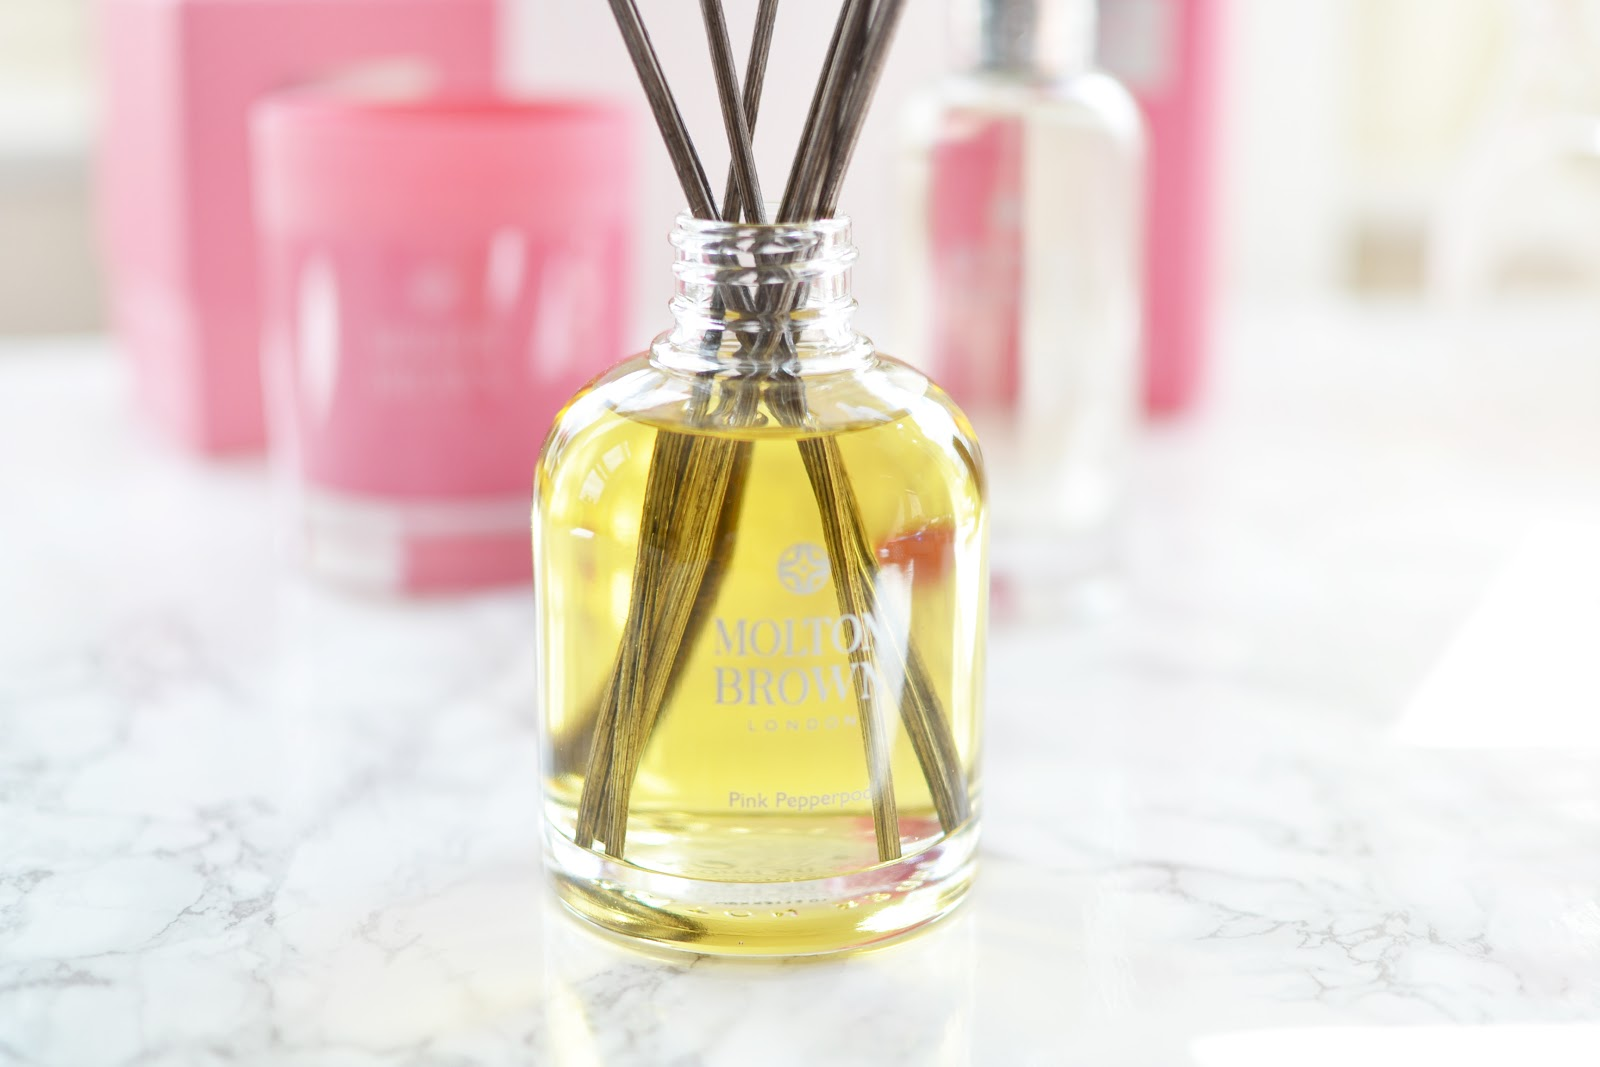 molton brown pink pepperpod reed diffuser